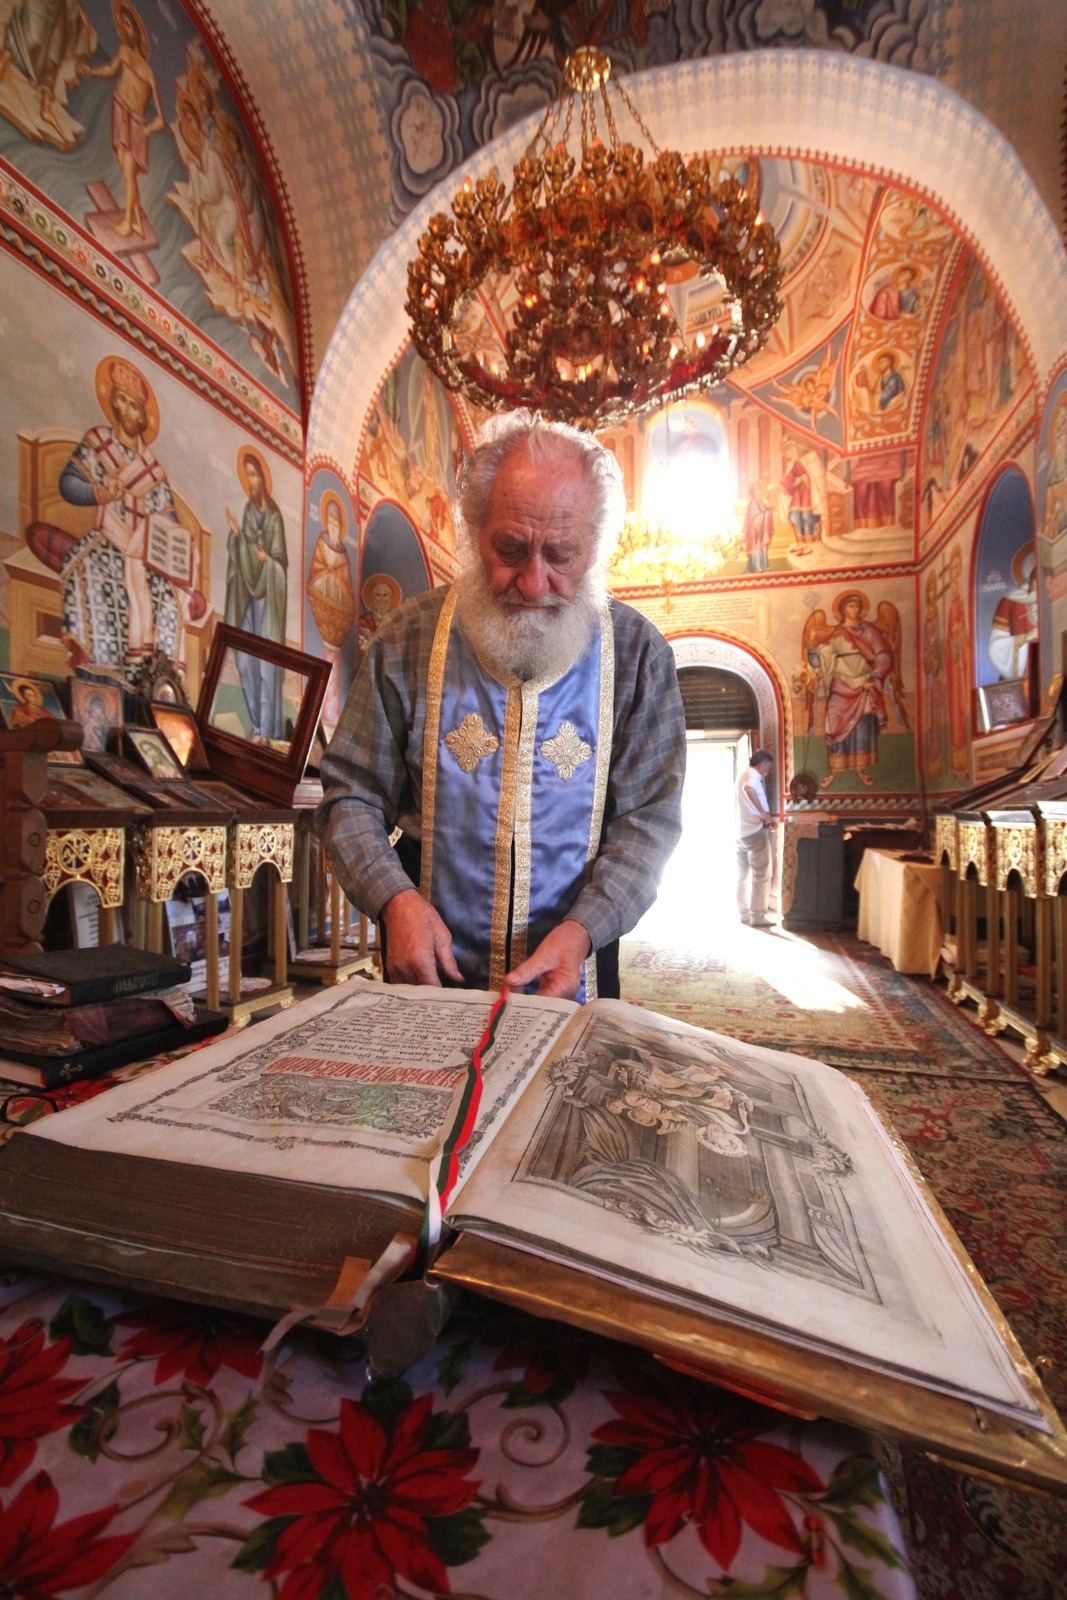 Archim. John of St. Theodore Tyron Monastery in Pravec showing an old Gospel